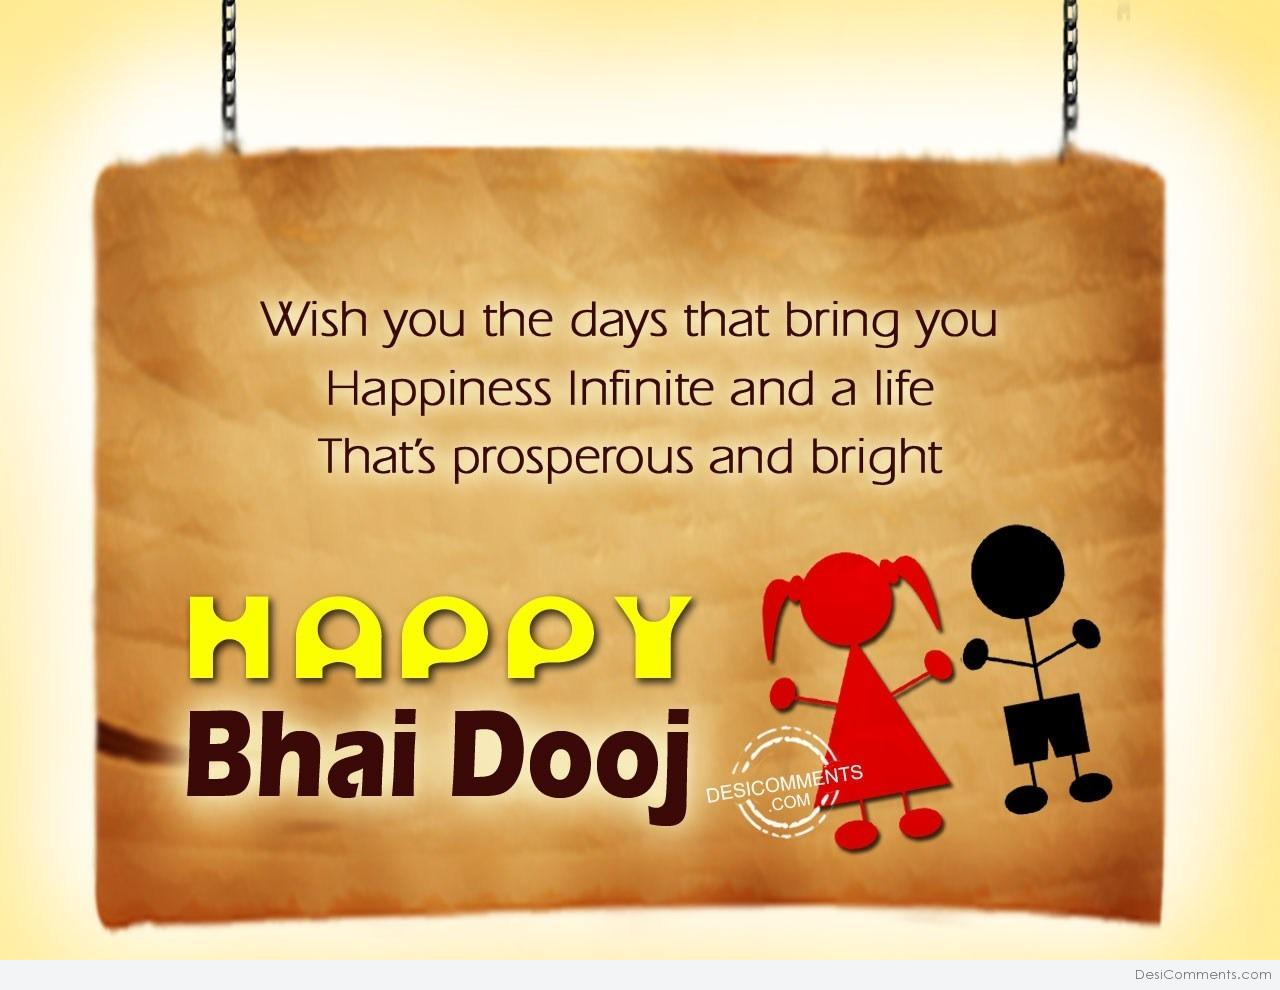 Bhai dooj pictures images graphics page 3 picture wish you the days that bring you happiness m4hsunfo